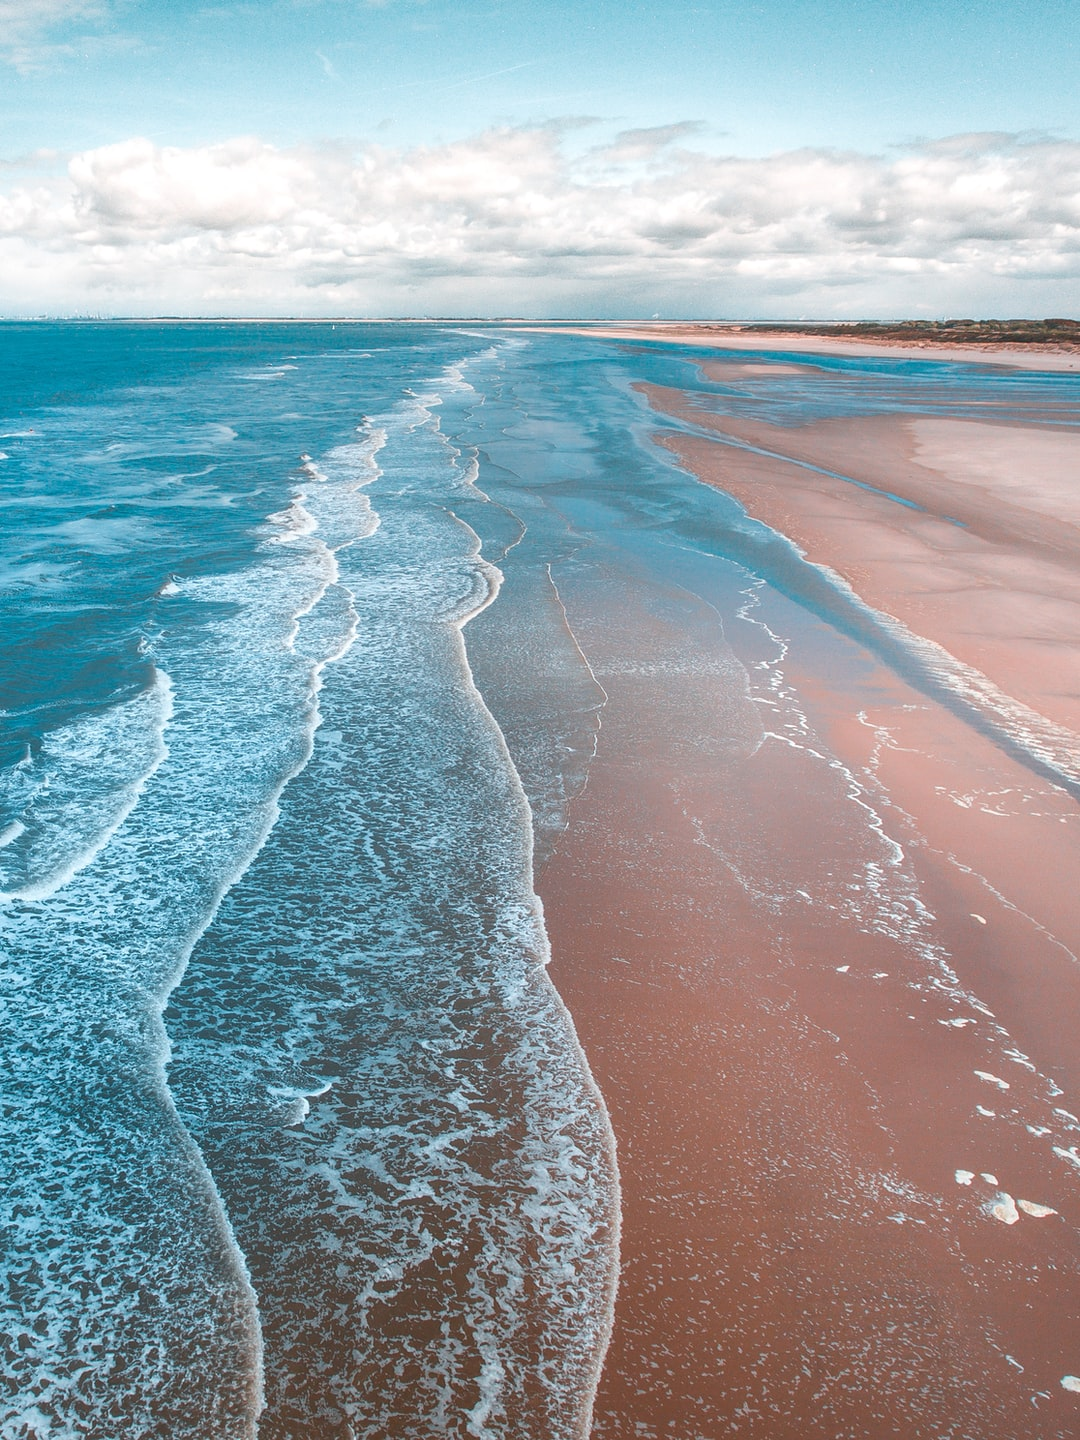 Crystal blue waves coming in onto a sandy beach.